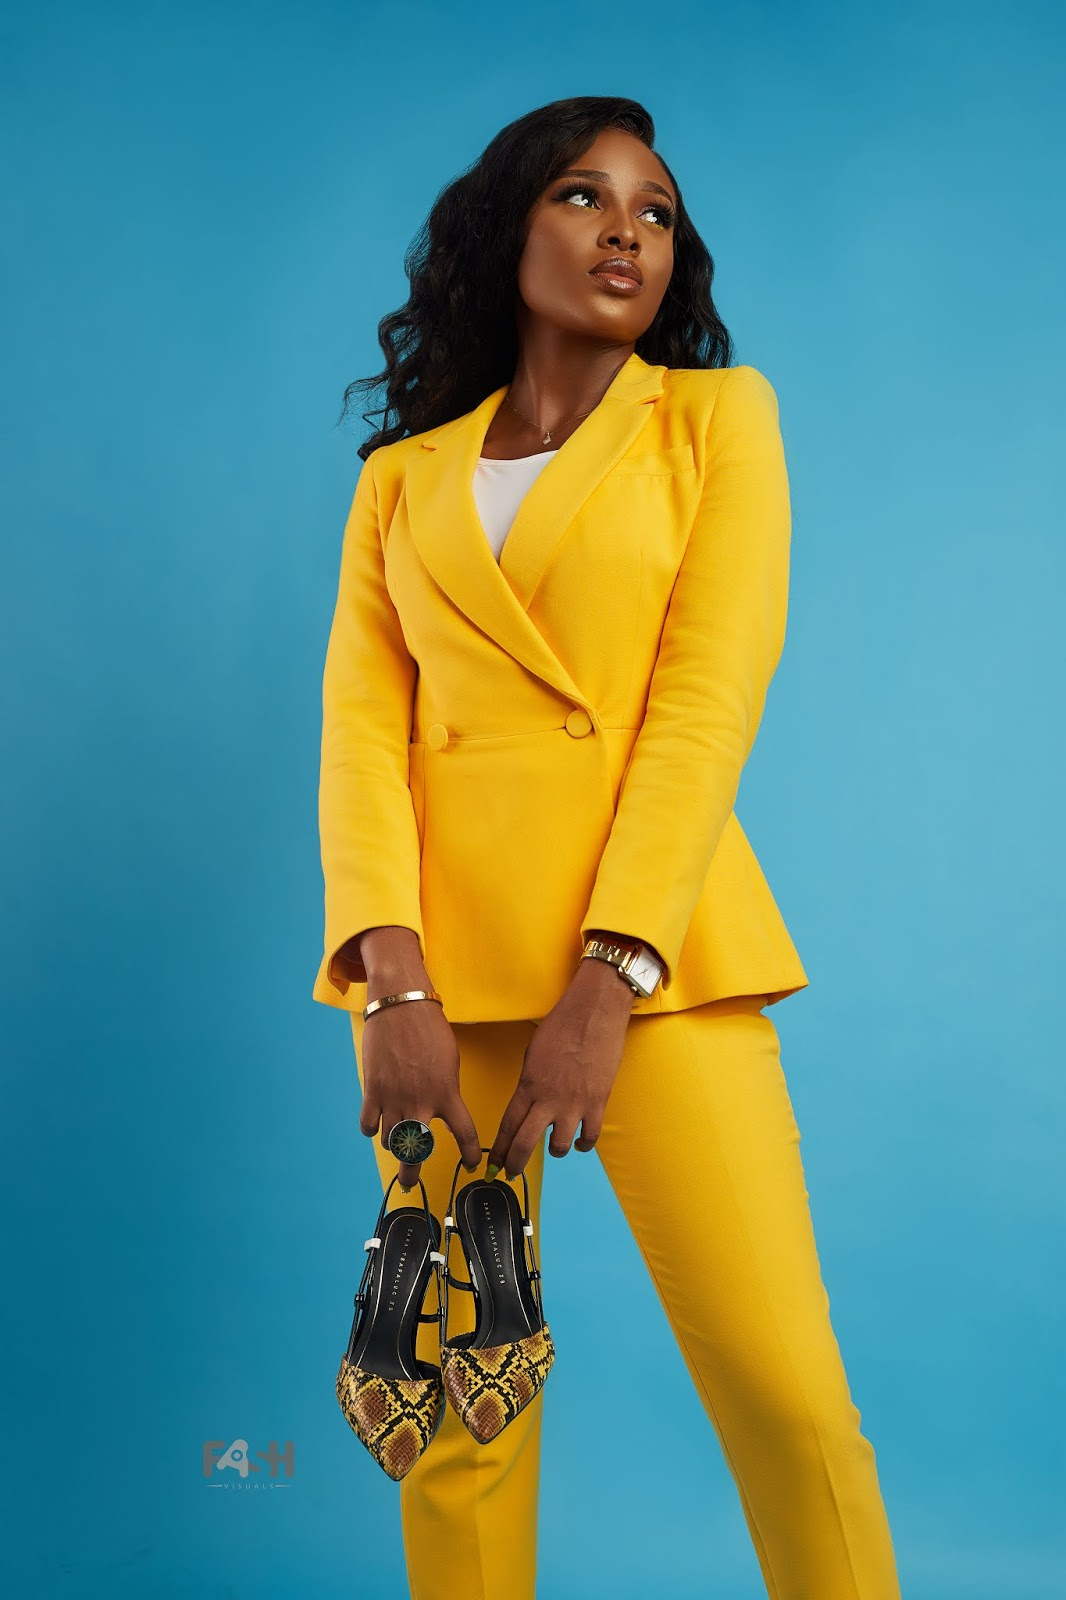 Zara Yellow Suit for women